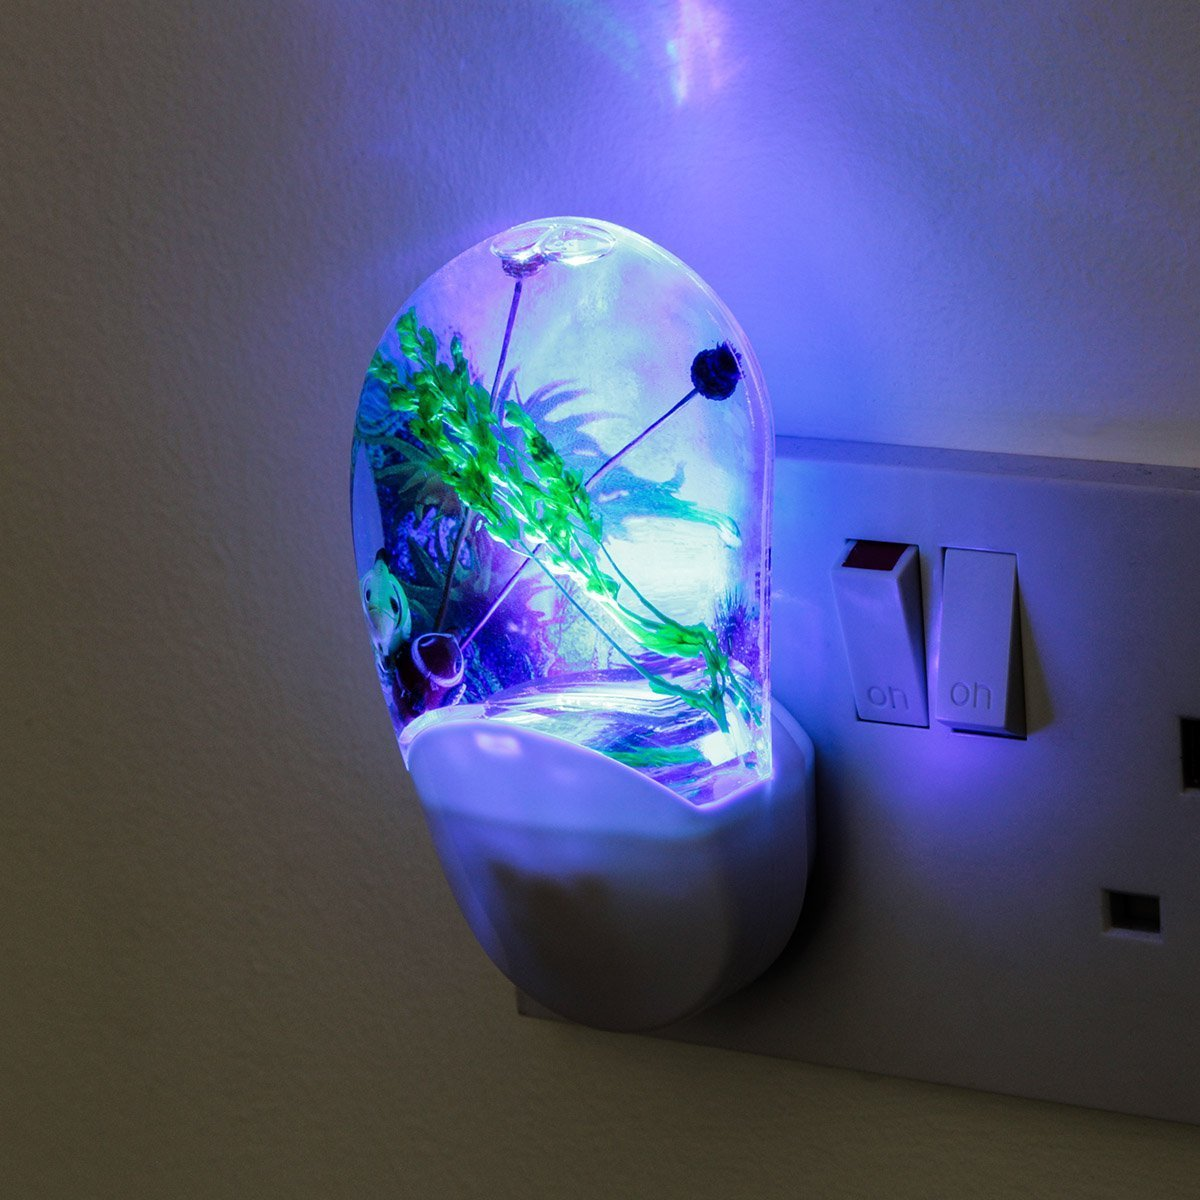 Nightlights For Children Best Plug In Night Light And Ocean Projectors The Mermaids